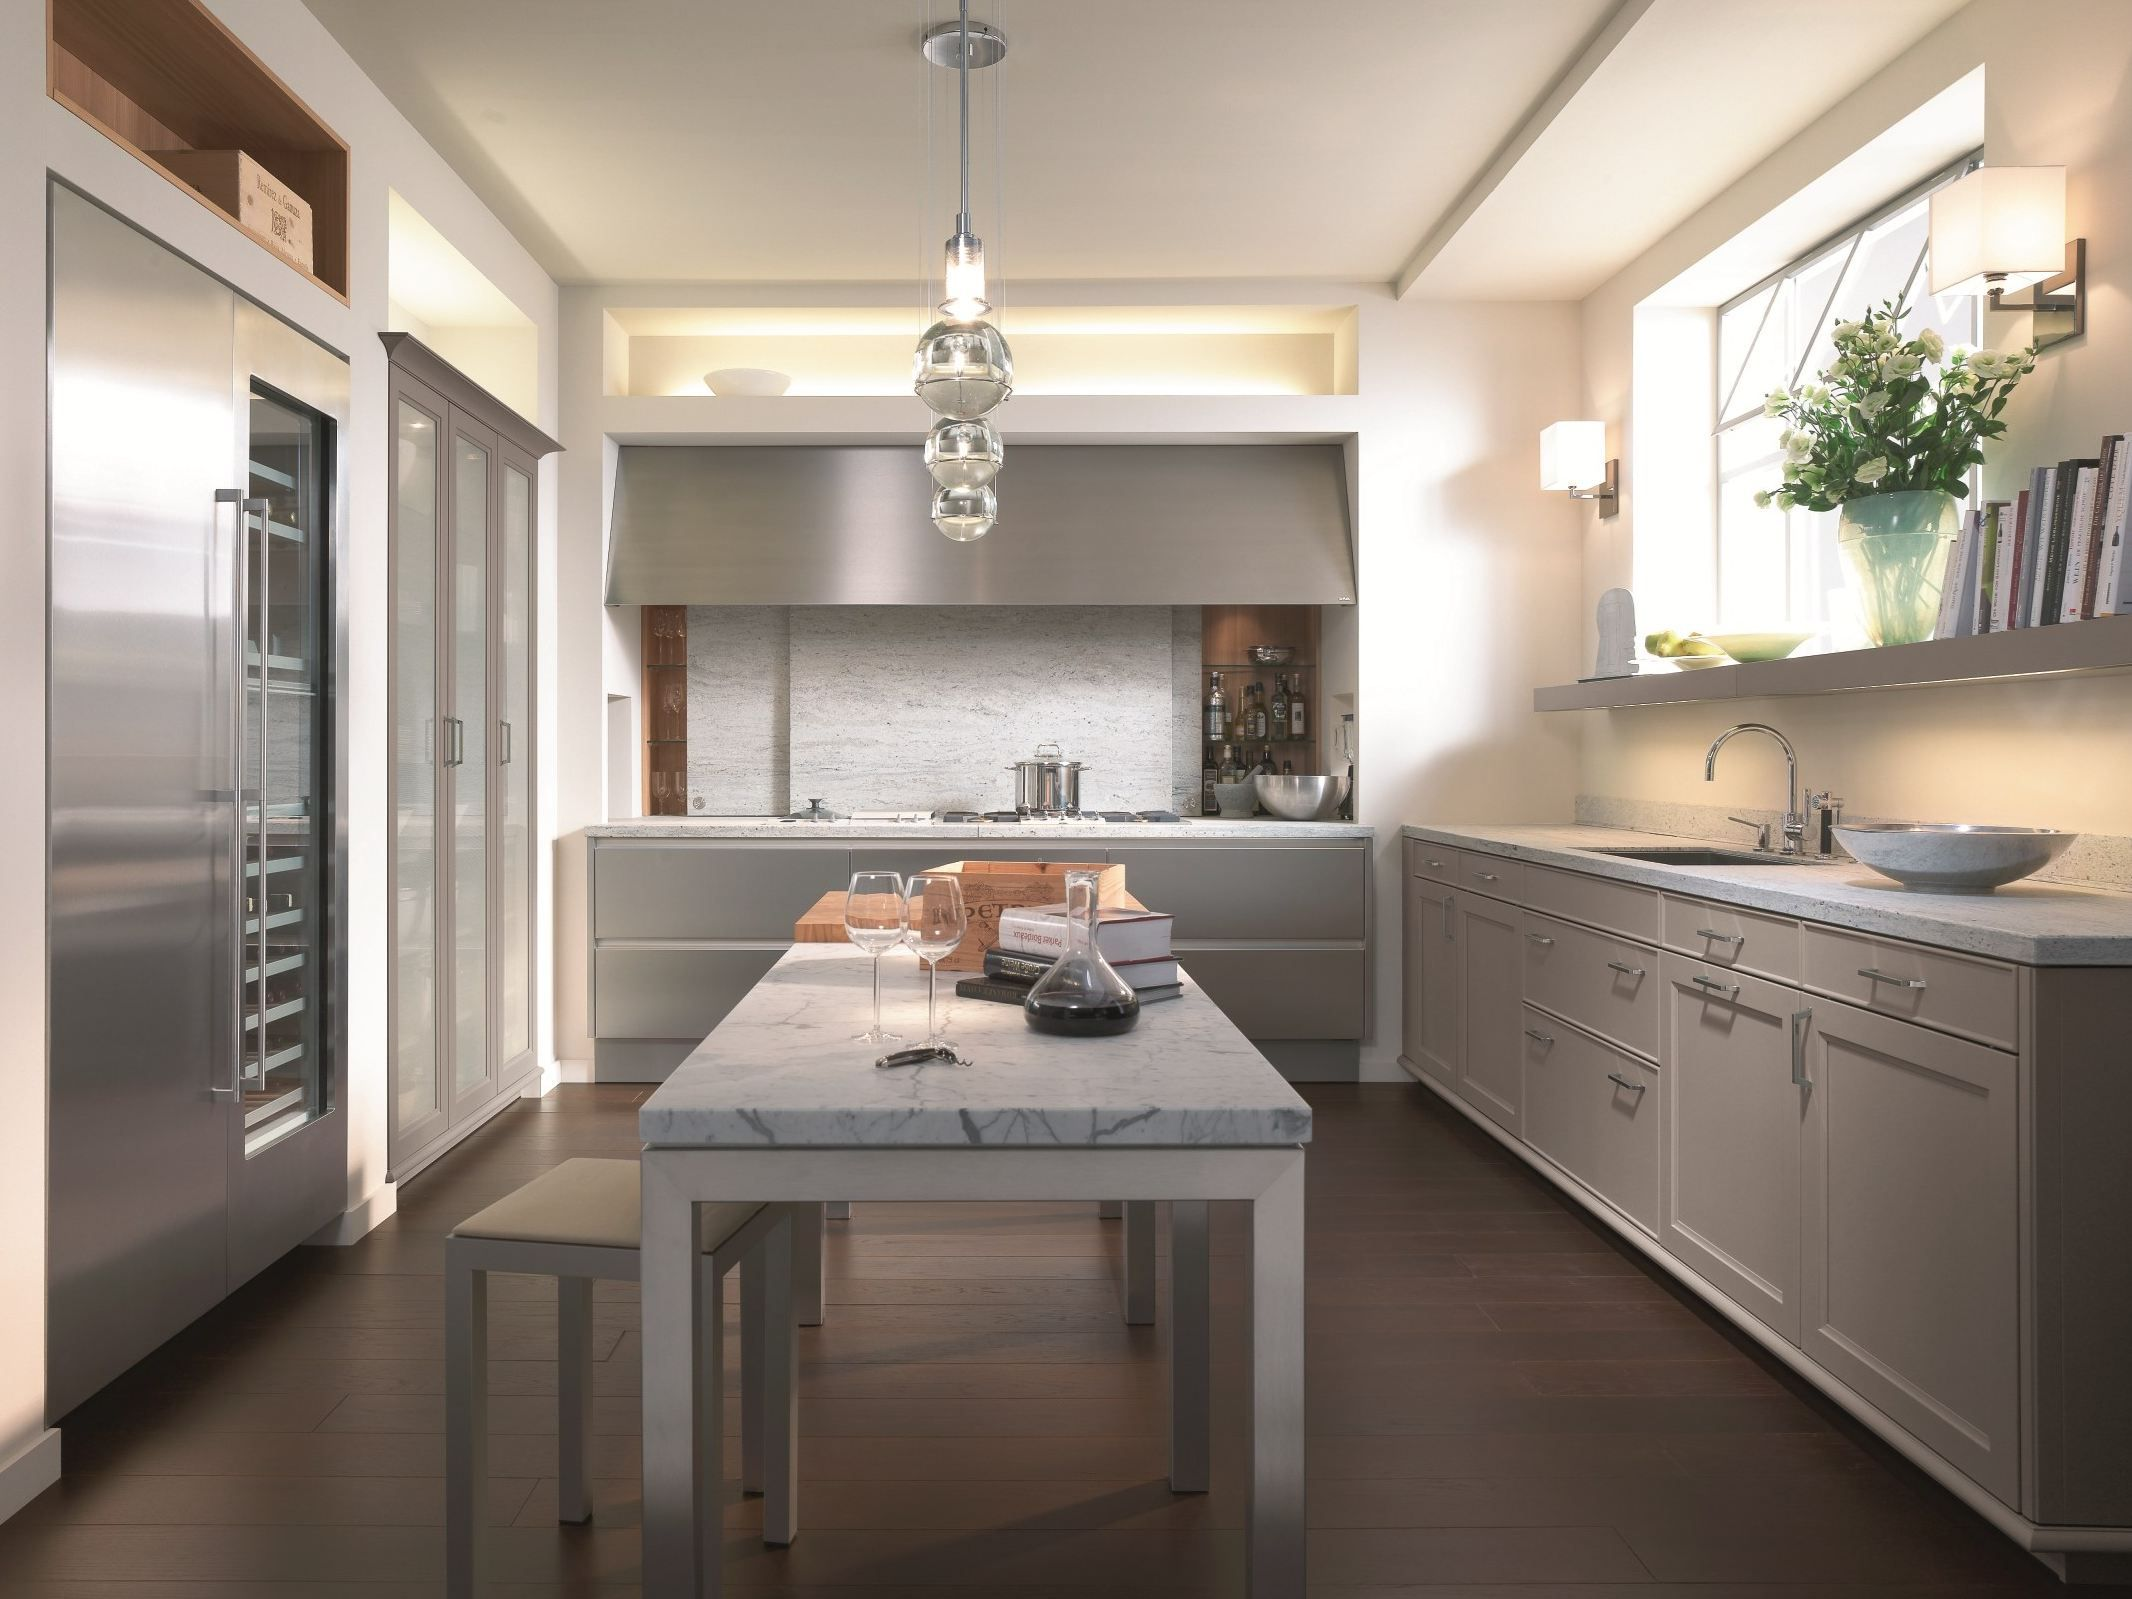 Love the floors kitchen Siematic Kitchens & Lacquered linear kitchen BEAUXARTS by SieMatic design Mick De ... kurilladesign.com